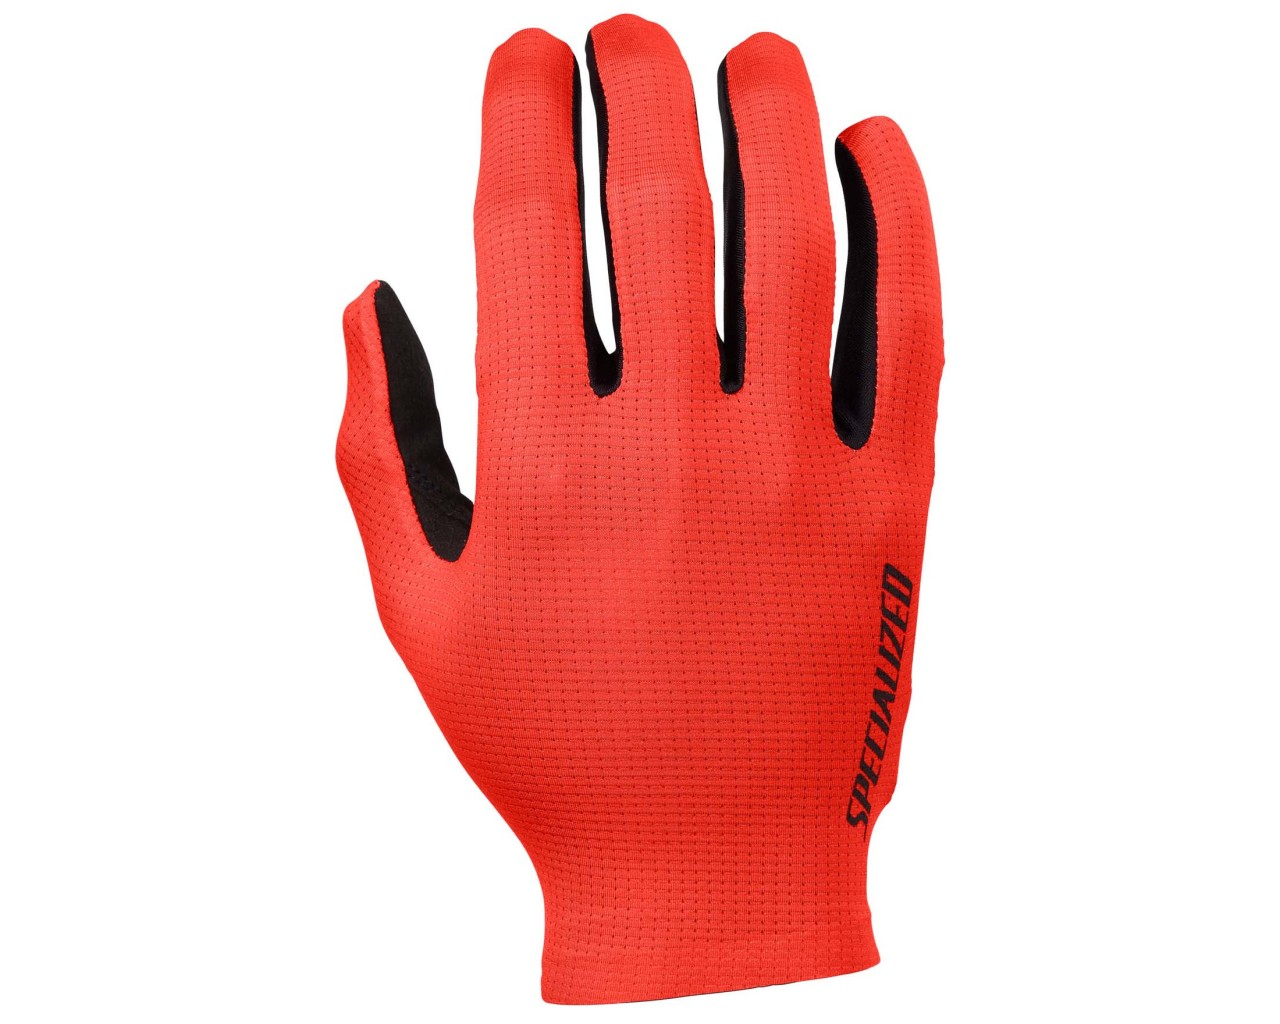 Specialized SL Pro Handschuhe langfinger | red